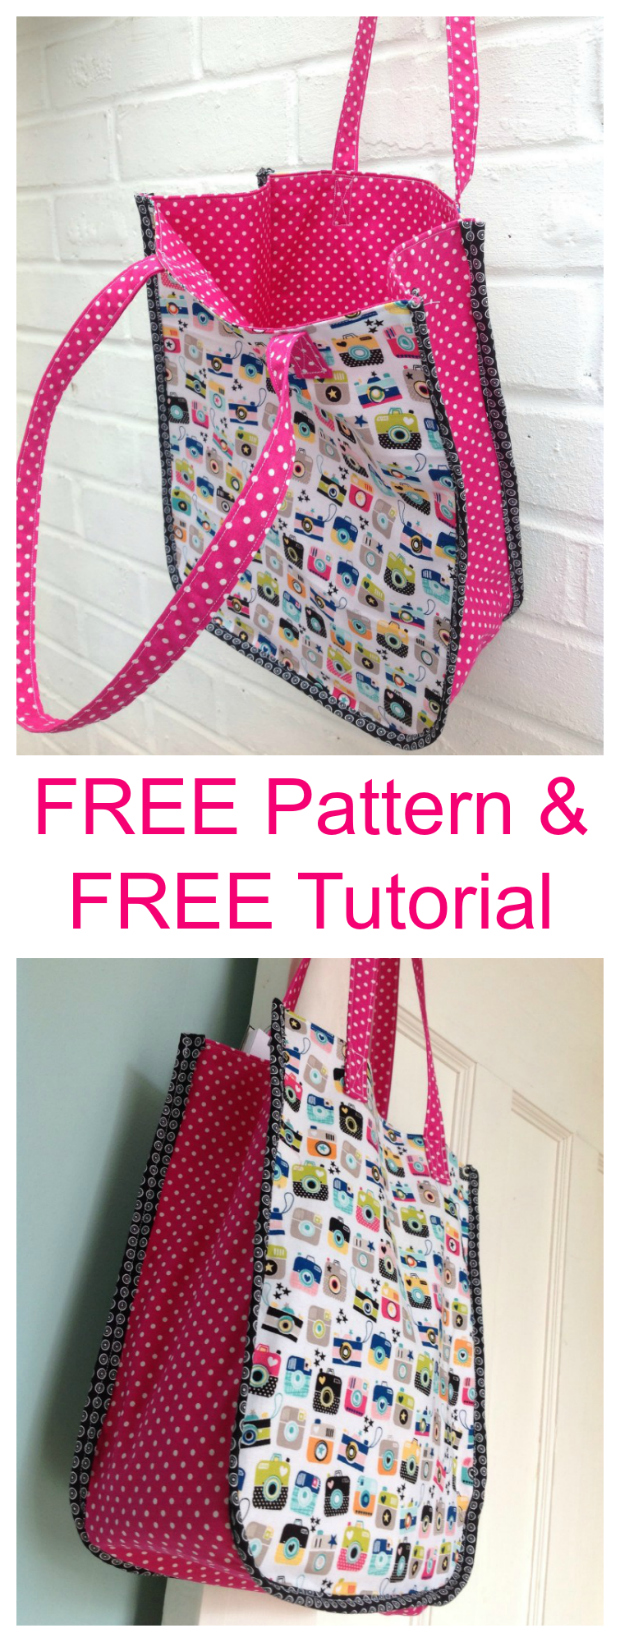 Instamatic Tote Bag FREE sewing pattern & tutorial